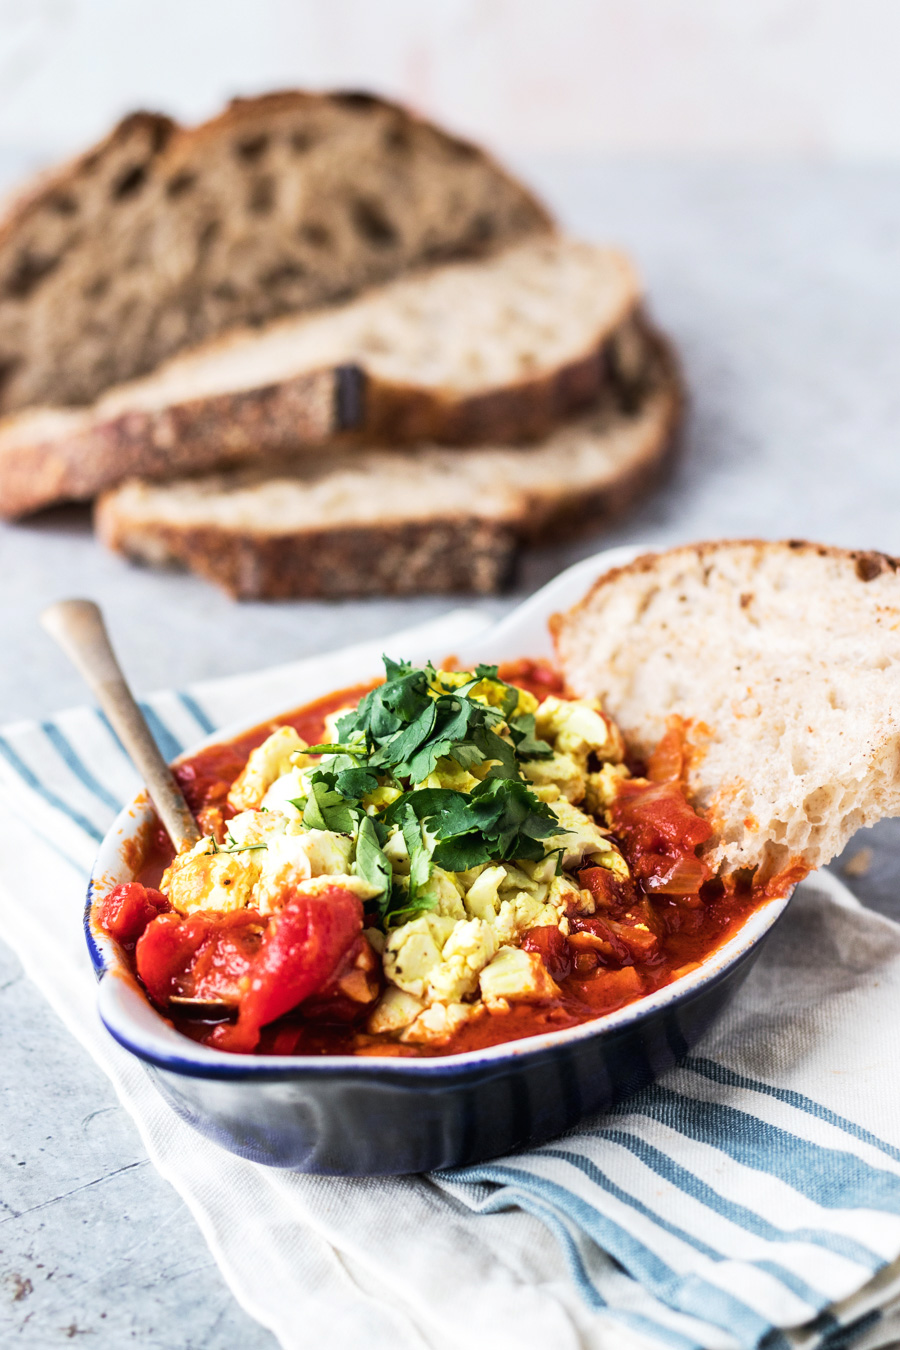 Vegan Shakshuka With Scrambled Tofu